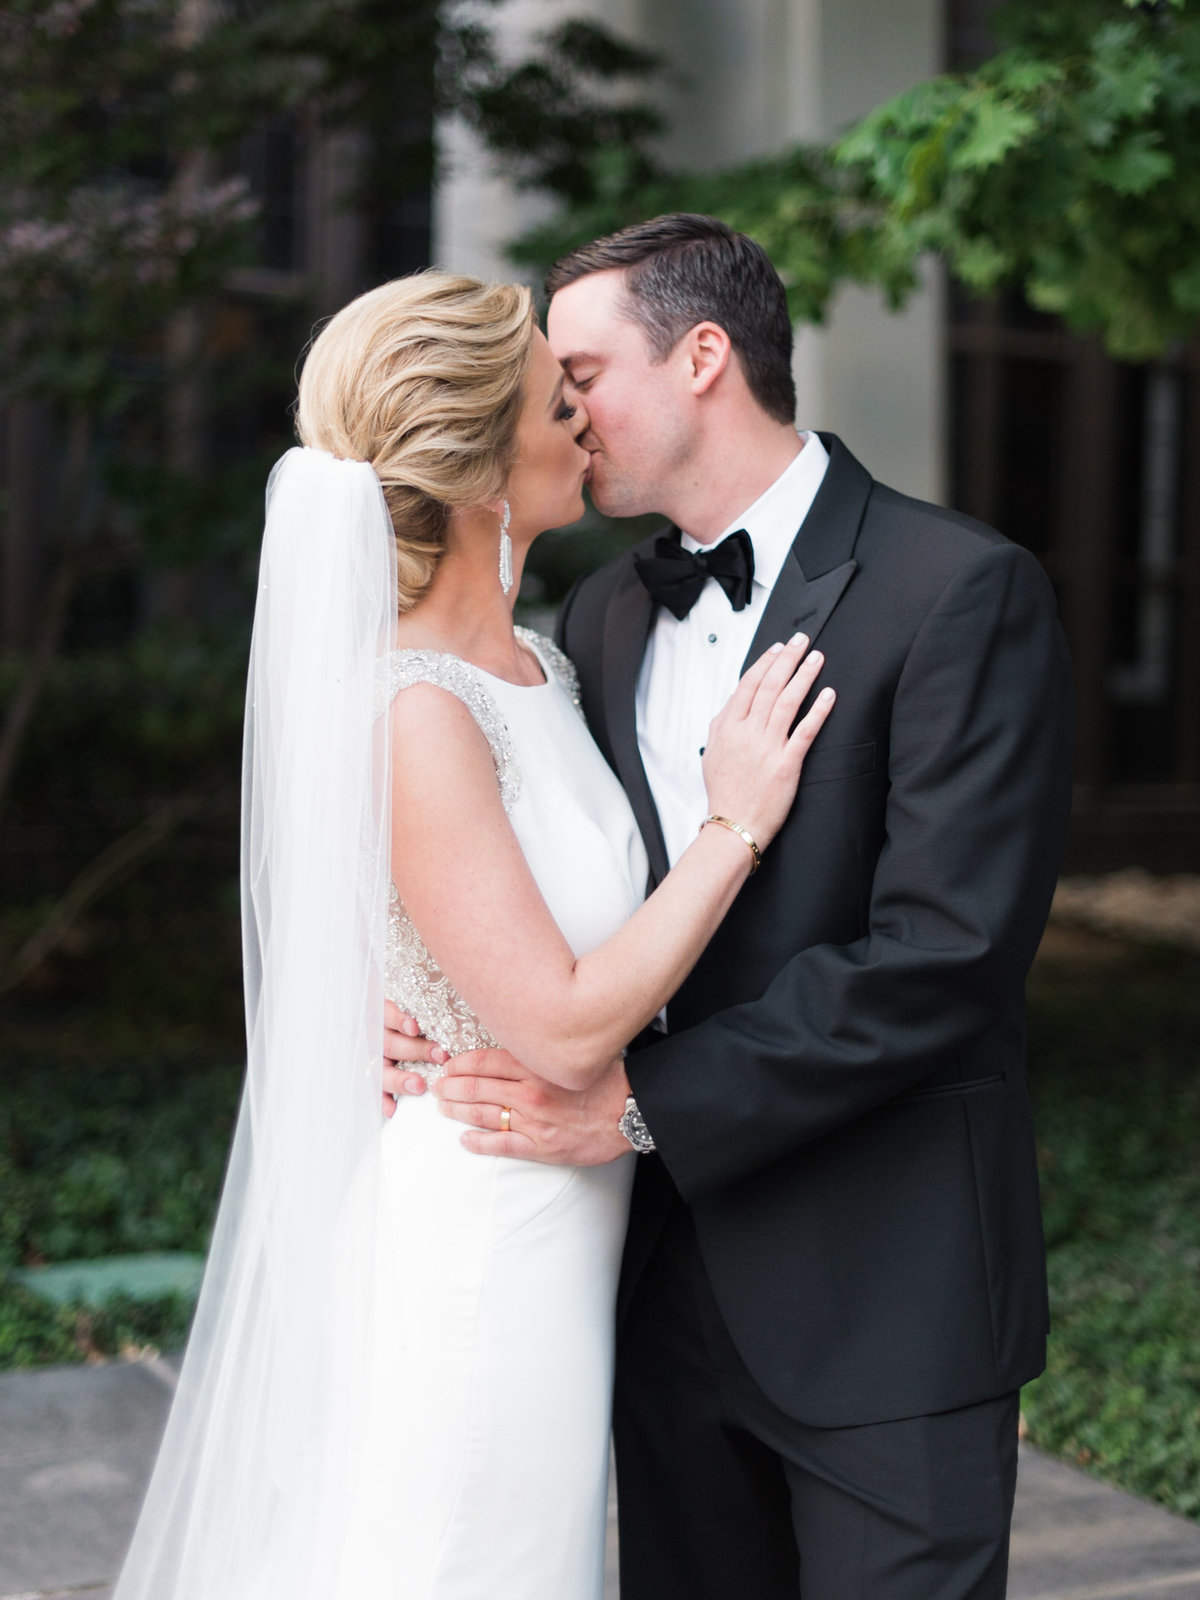 Courtney Hanson Photography - Modern wedding at The Joule-2833